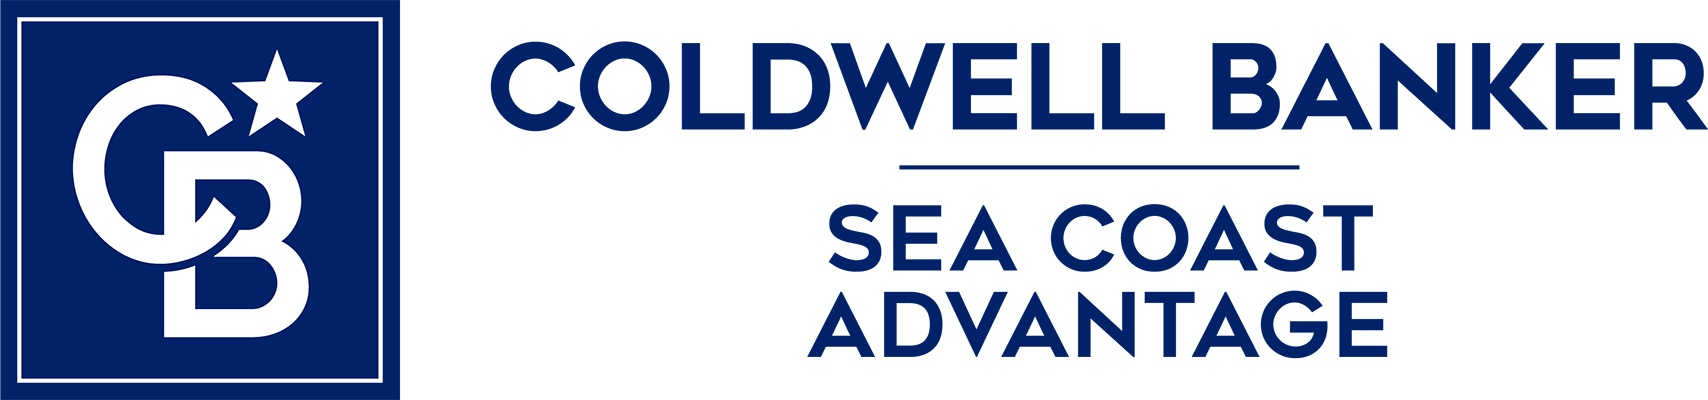 Kathy Black - Coldwell Banker Sea Coast Advantage Realty